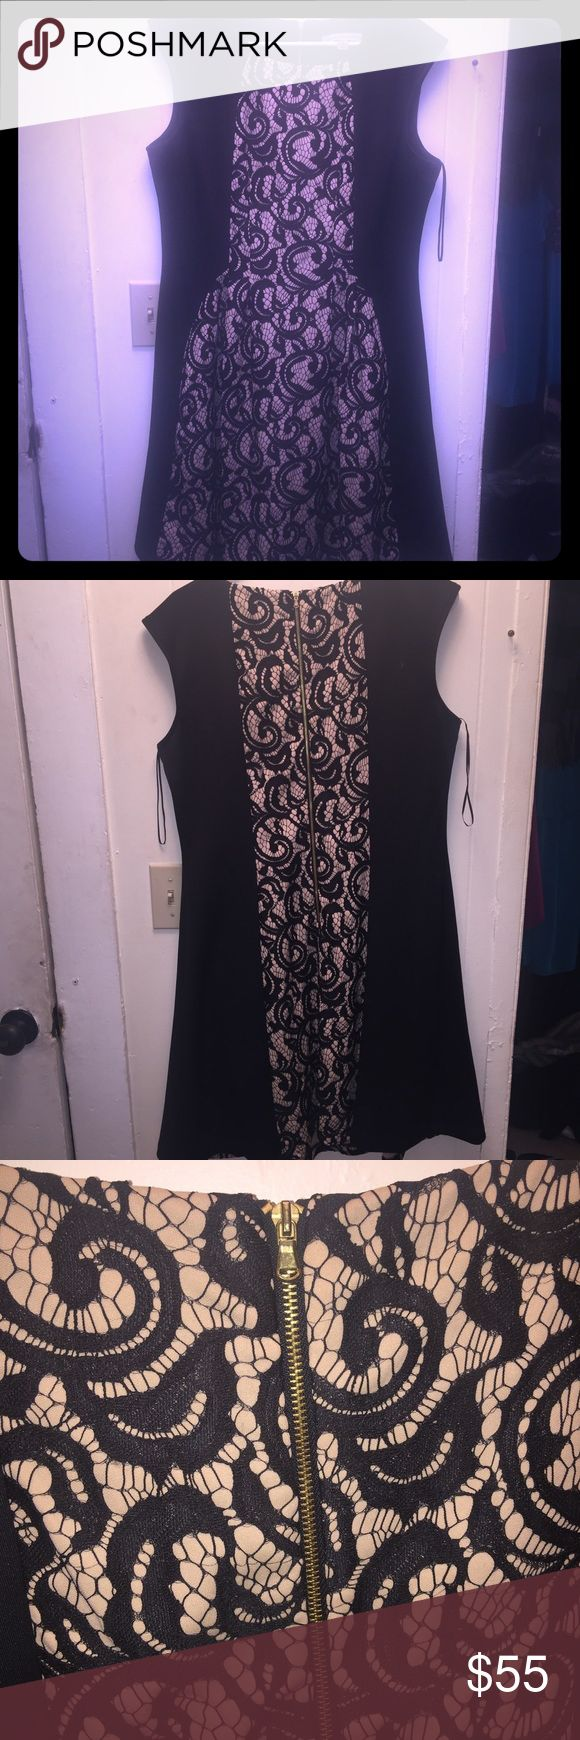 DANNY AND NICOLE FIT AND FLARE BLACK AND NUDE LACE DANNY AND NICOLE FIT AND FLARE BLACK AND NUDE LACE nude lace dress is a perfect fit and super comfortable. Scoop neck - back zipper - figure flattering - a line - Size 16 - worn ONCE to a wedding Dresses Asymmetrical